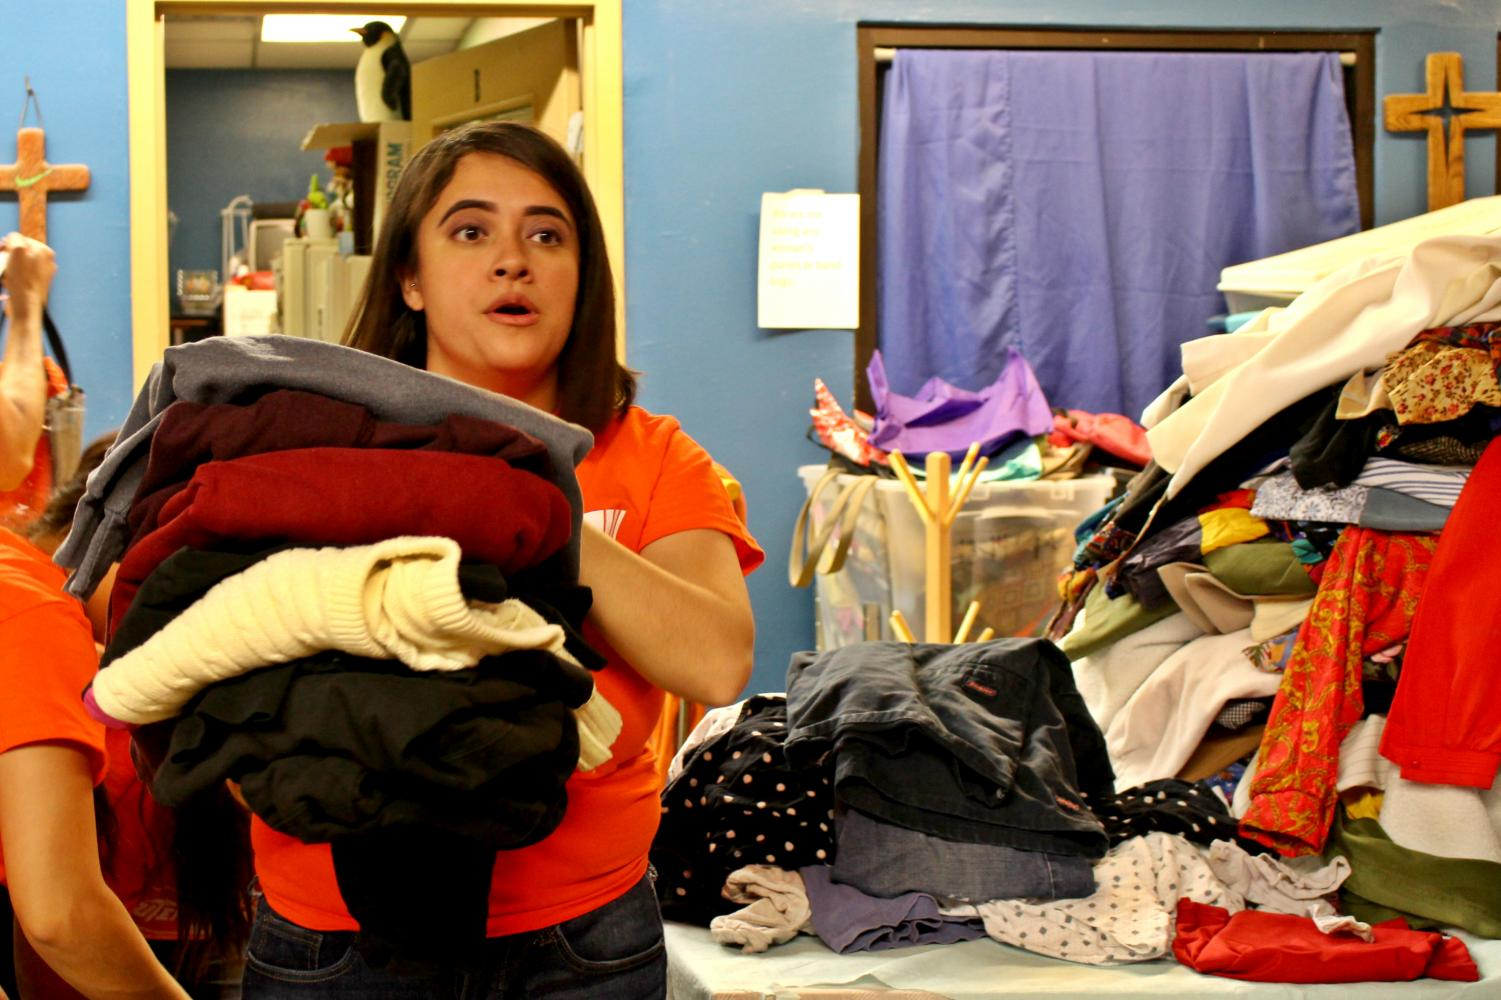 UTEP+Project+Move+help+sort+through+clothing+donations+at+Rescue+Mission+warehouse%2C+El+Paso.